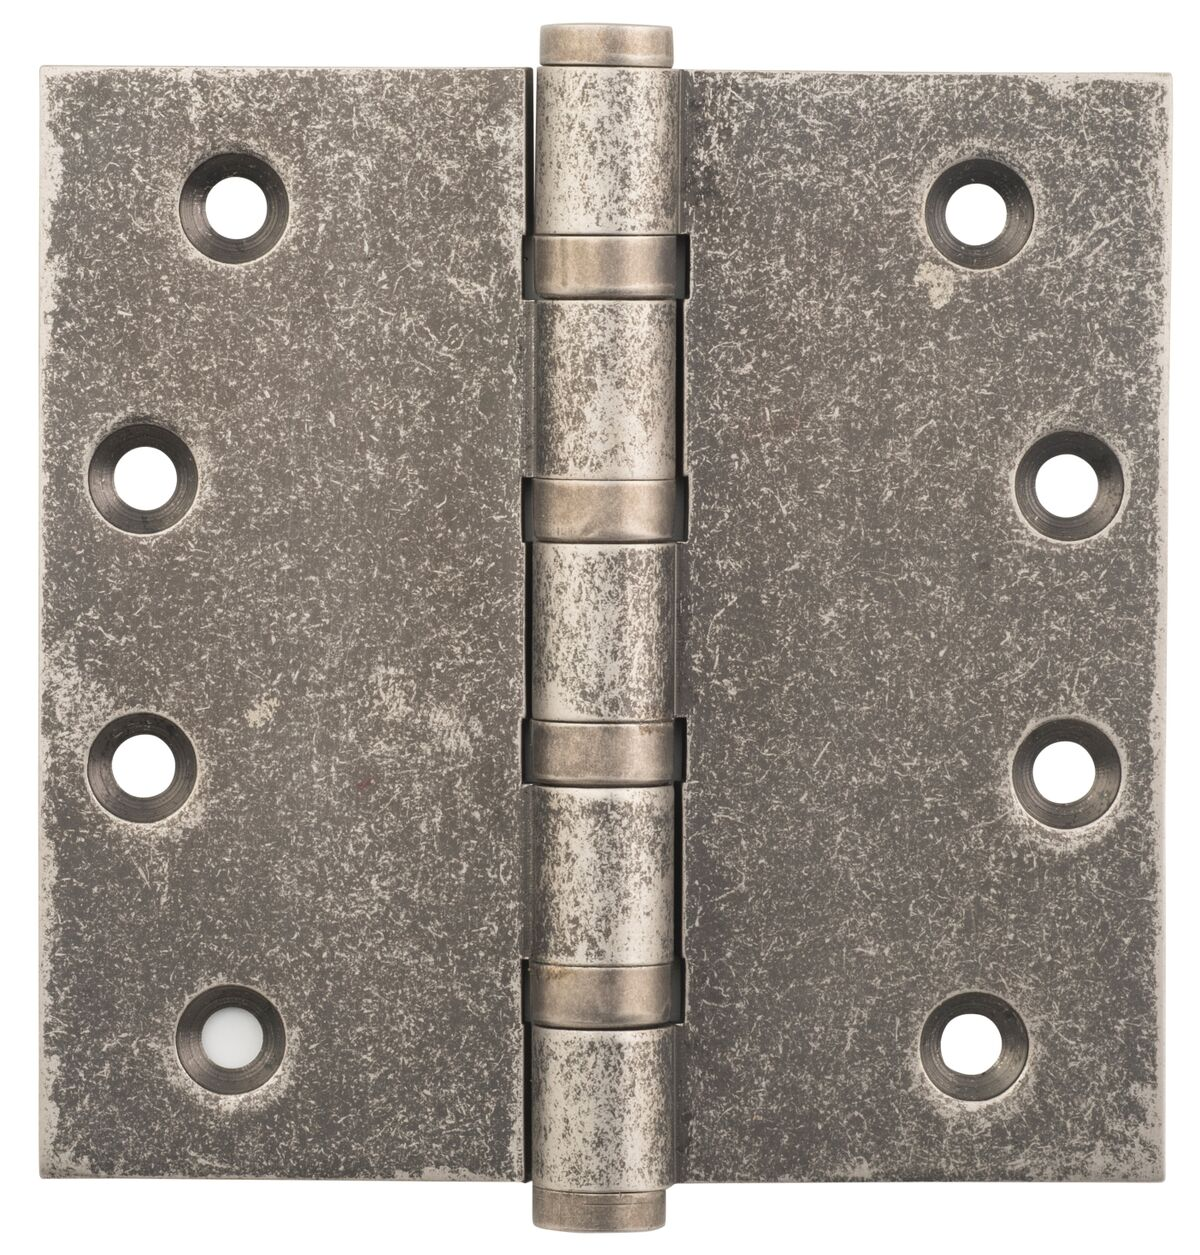 Rumbled Nickel Hinge